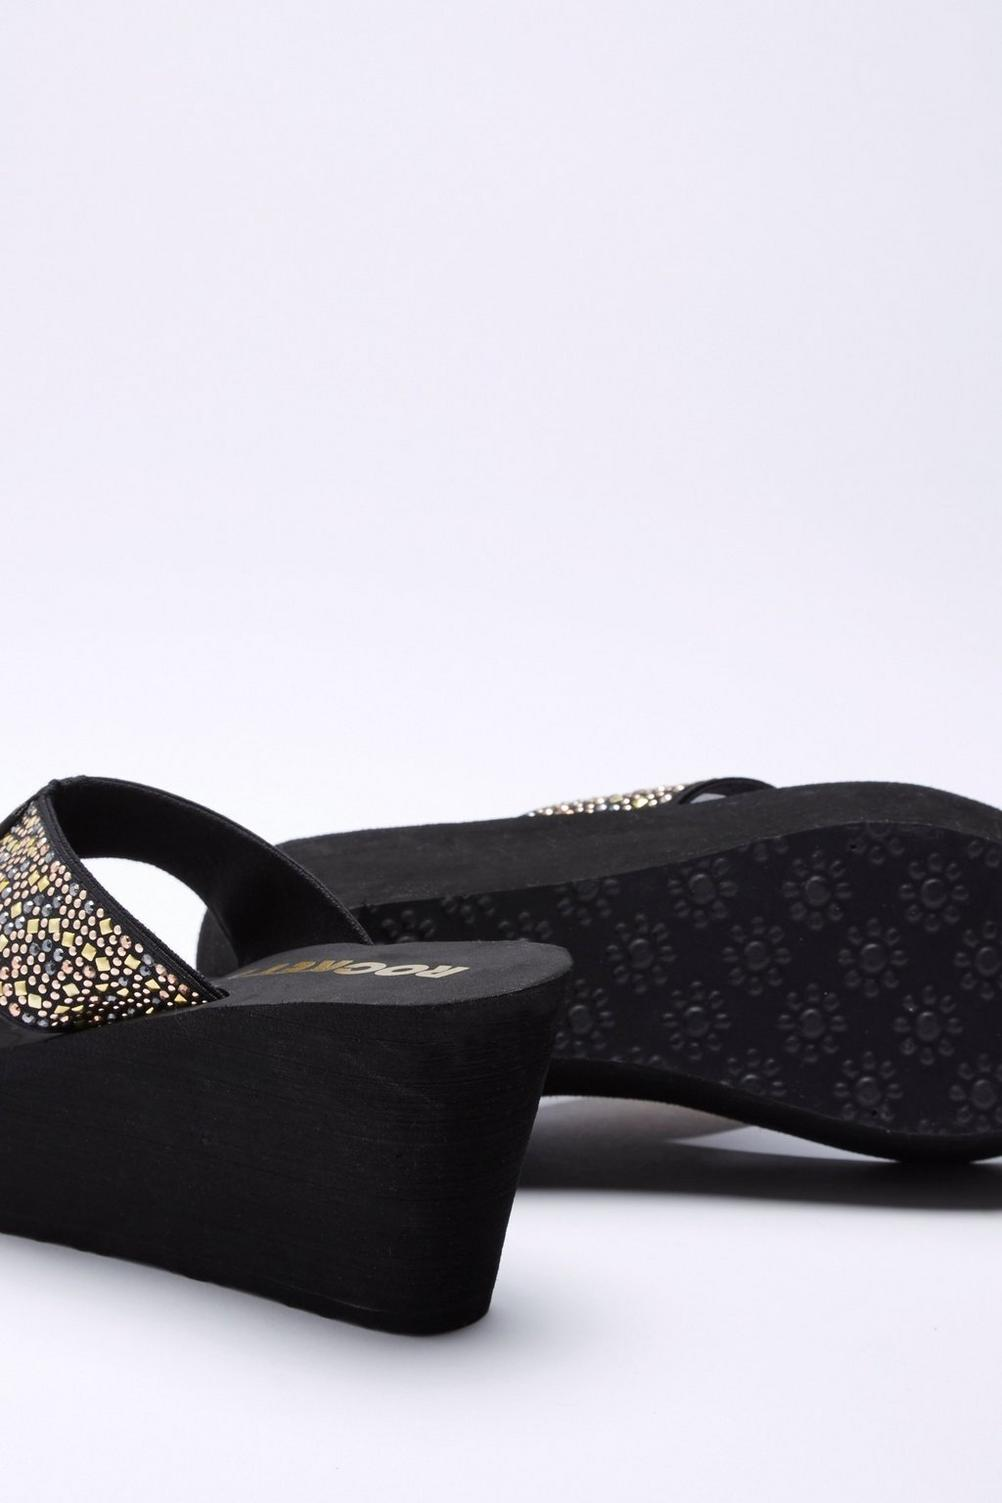 58da4ef4e657 Image for Rocket Dog Diver Eclipse Wedge Sandals from studio